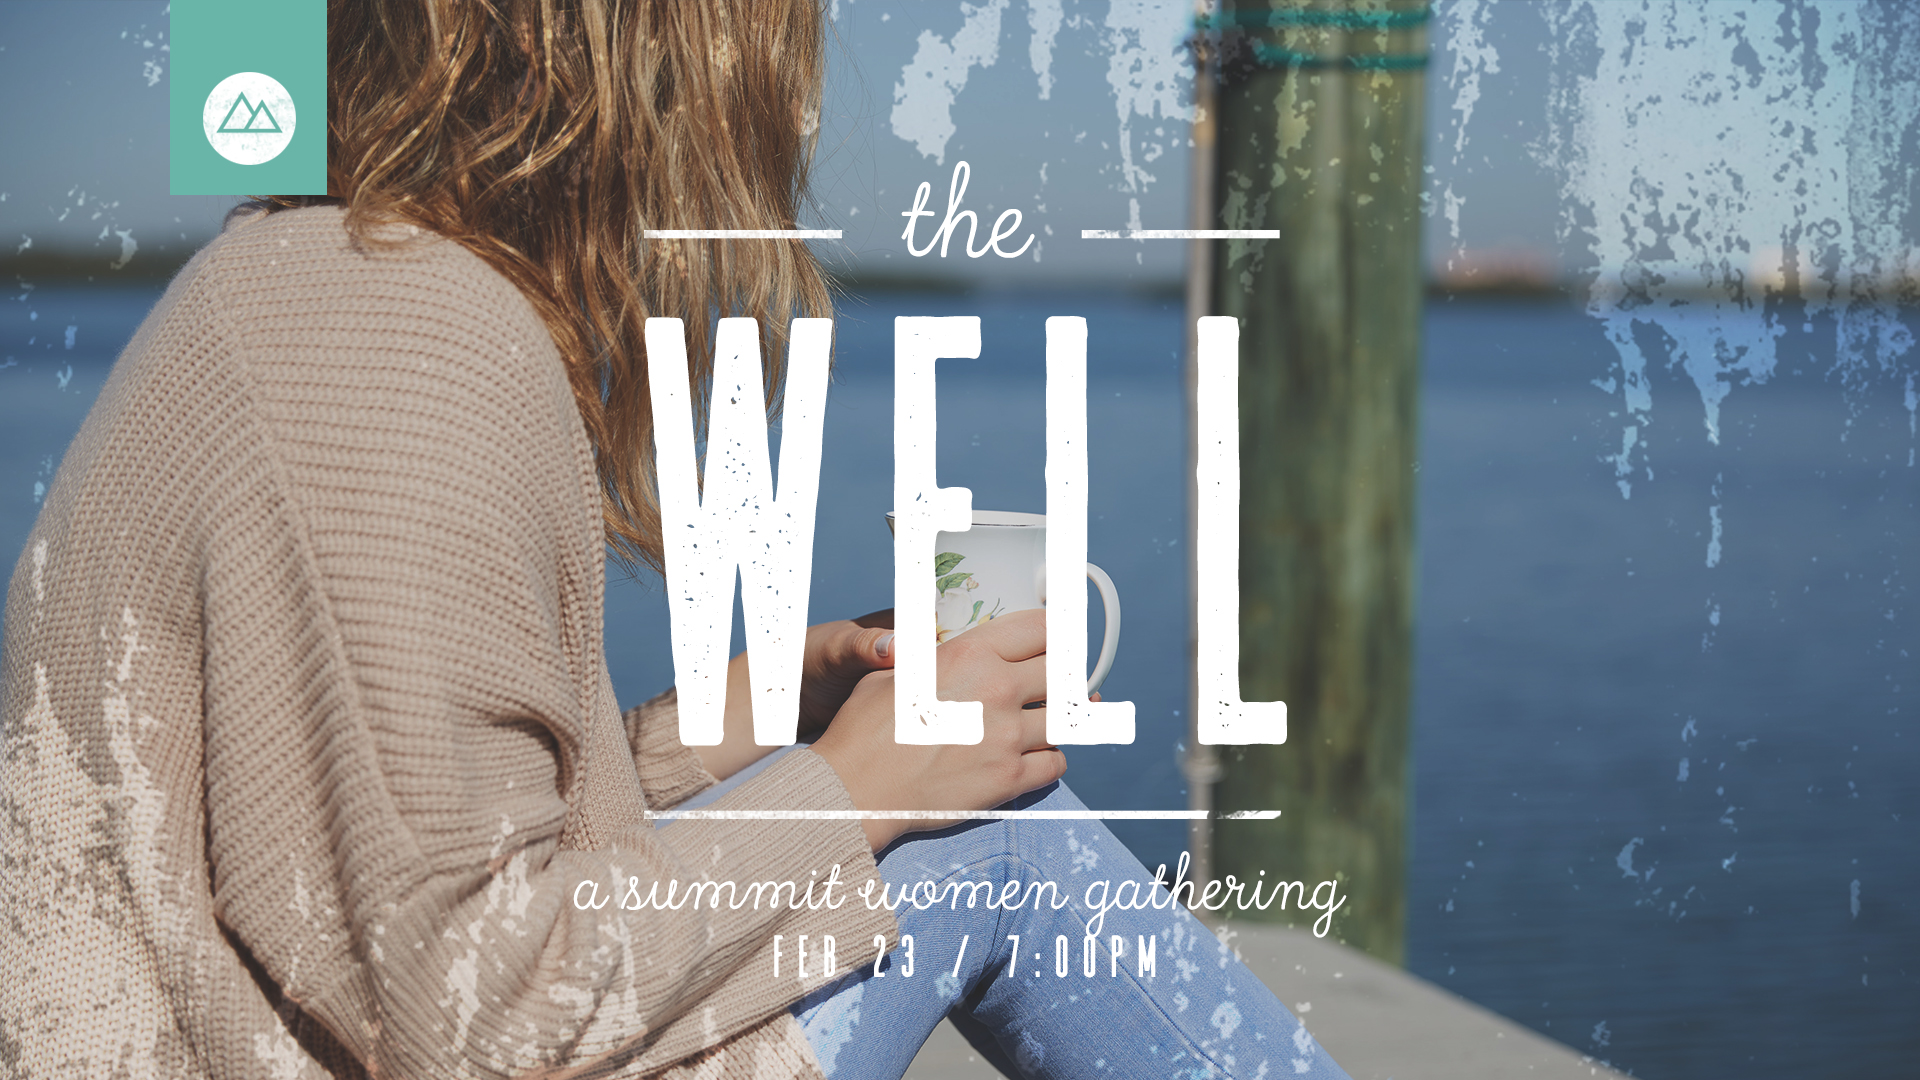 Thewell wide